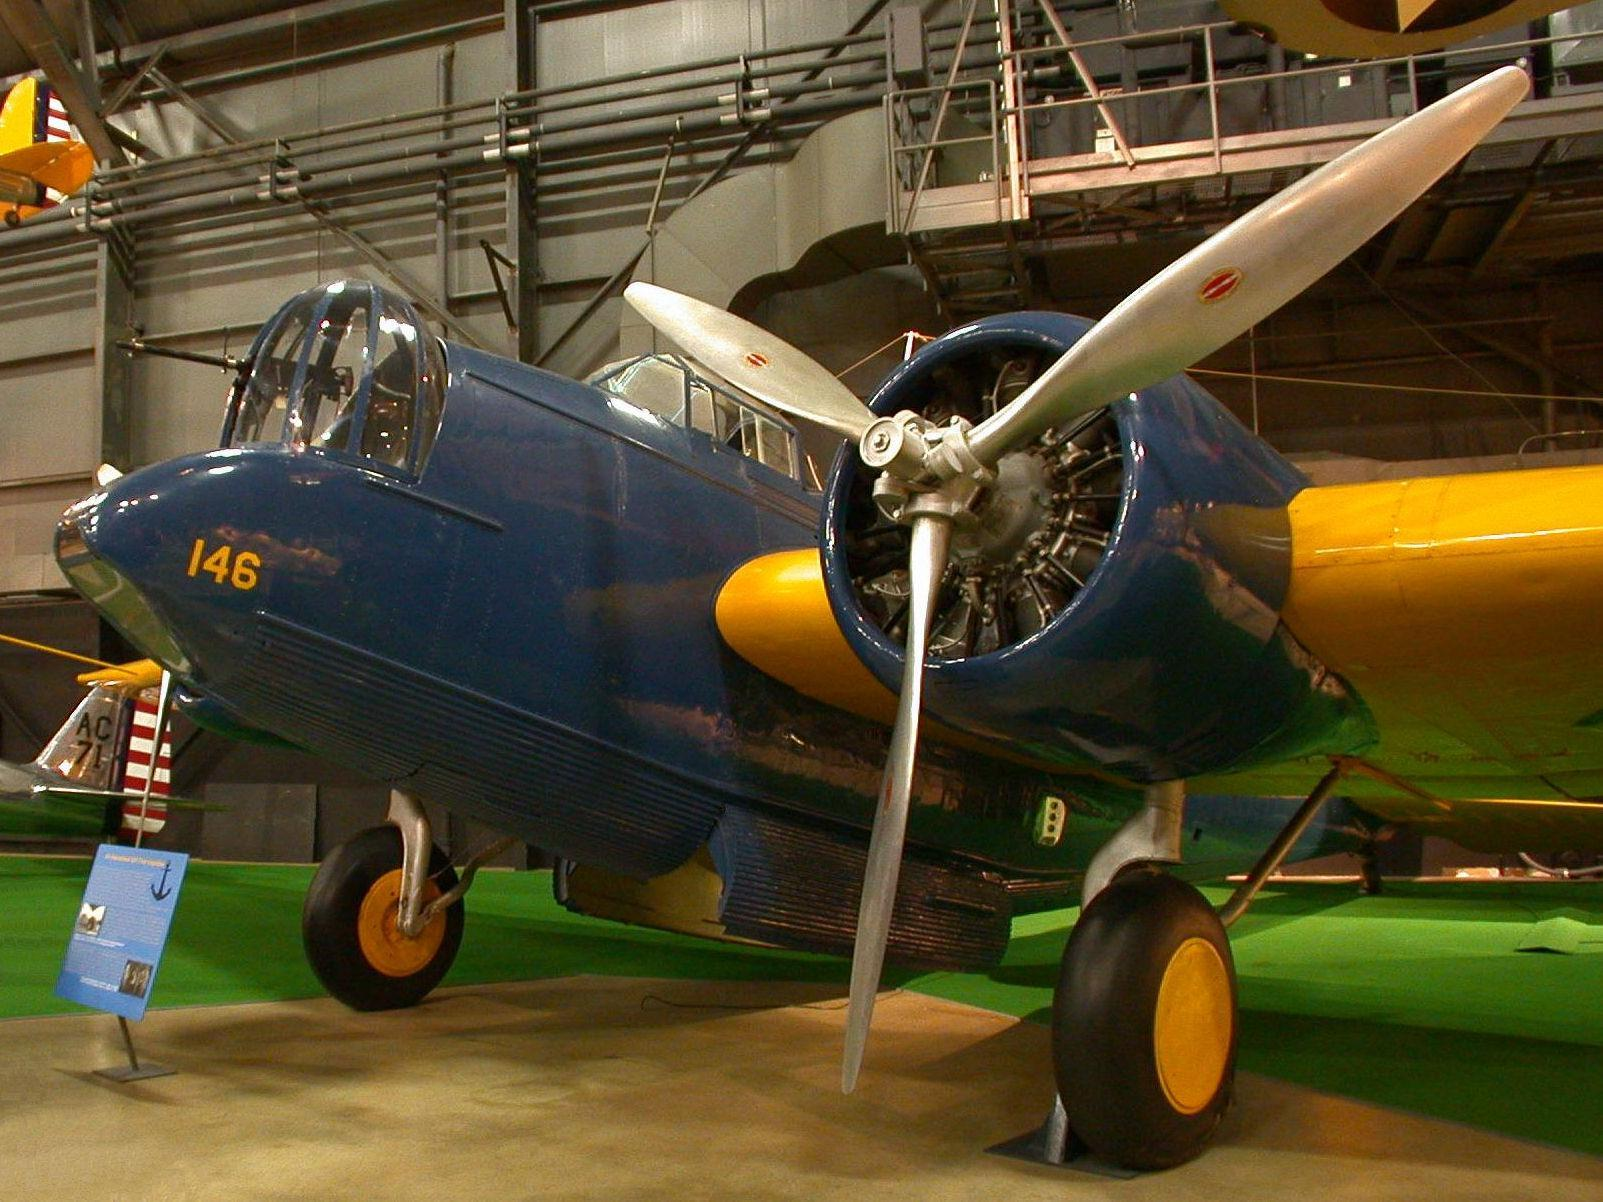 Martin YB-10 on display at the museum